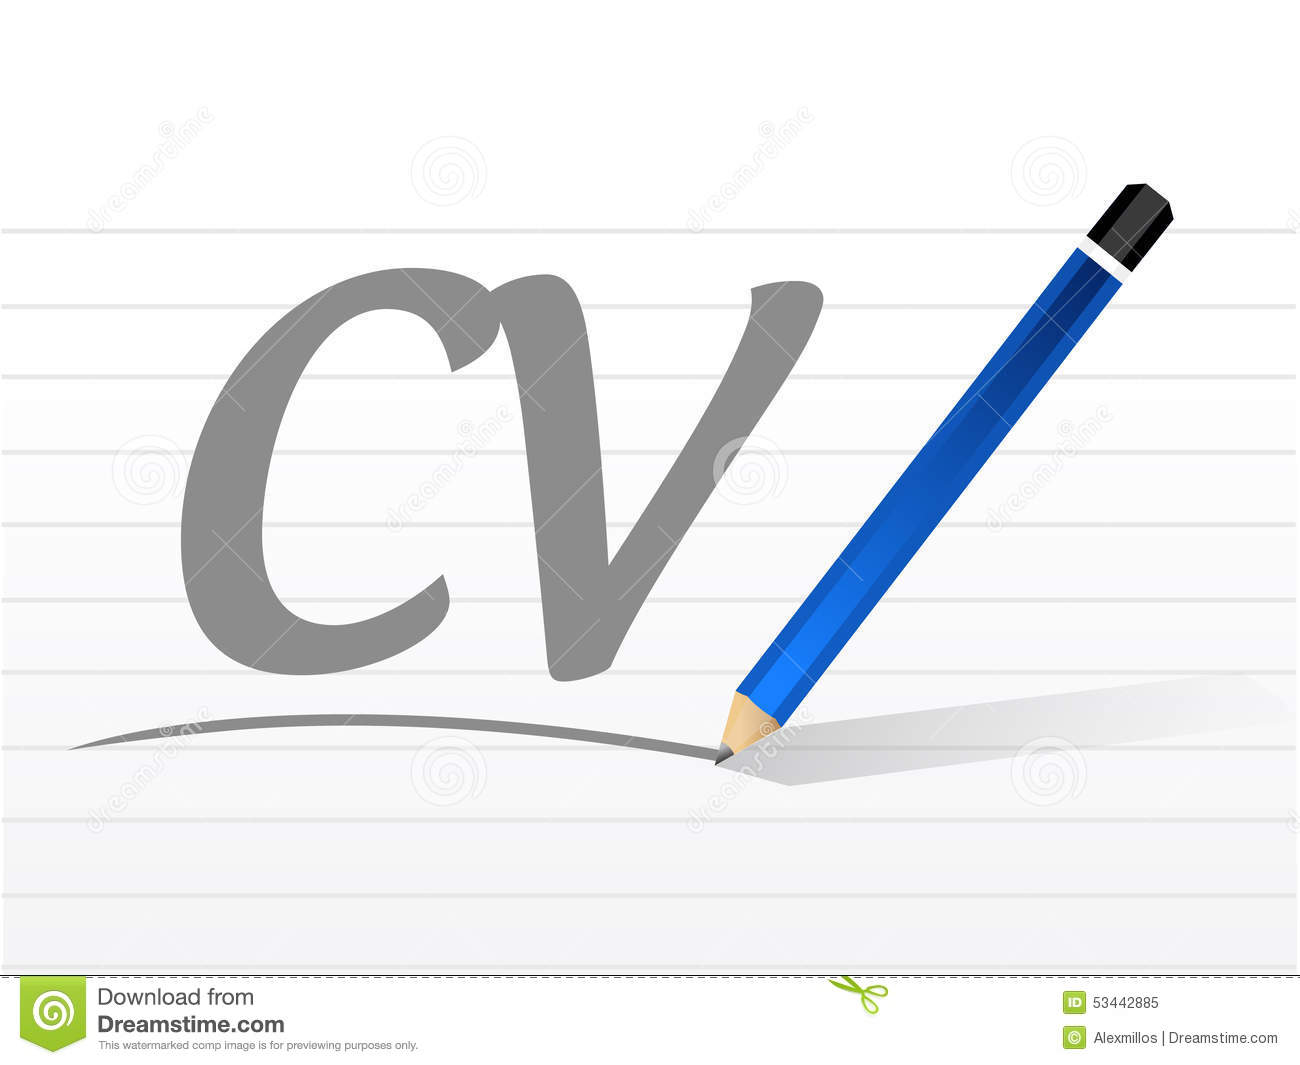 cv clipart 4 | Clipart Station